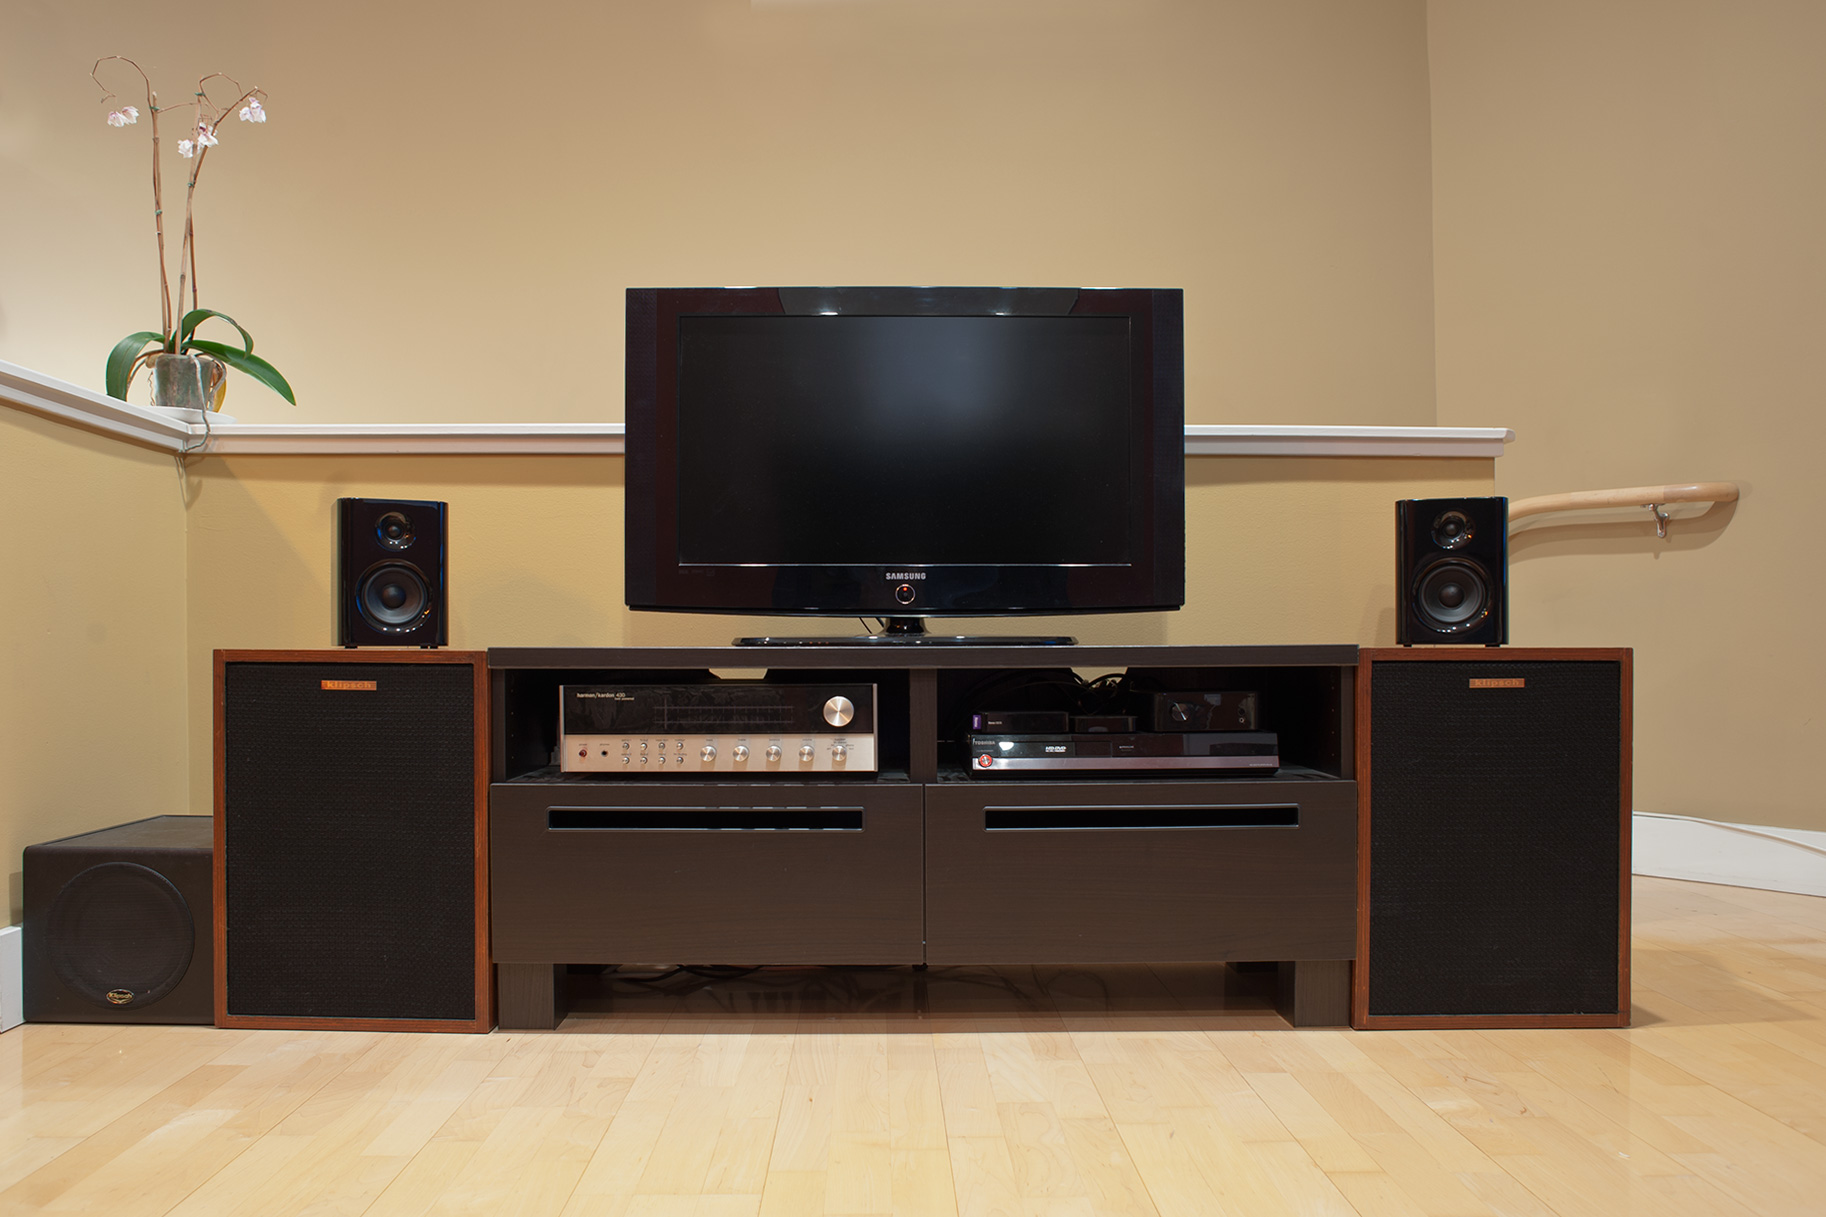 Kanto yaro speaker review it 39 s just justinit 39 s just justin - What size tv to get for living room ...